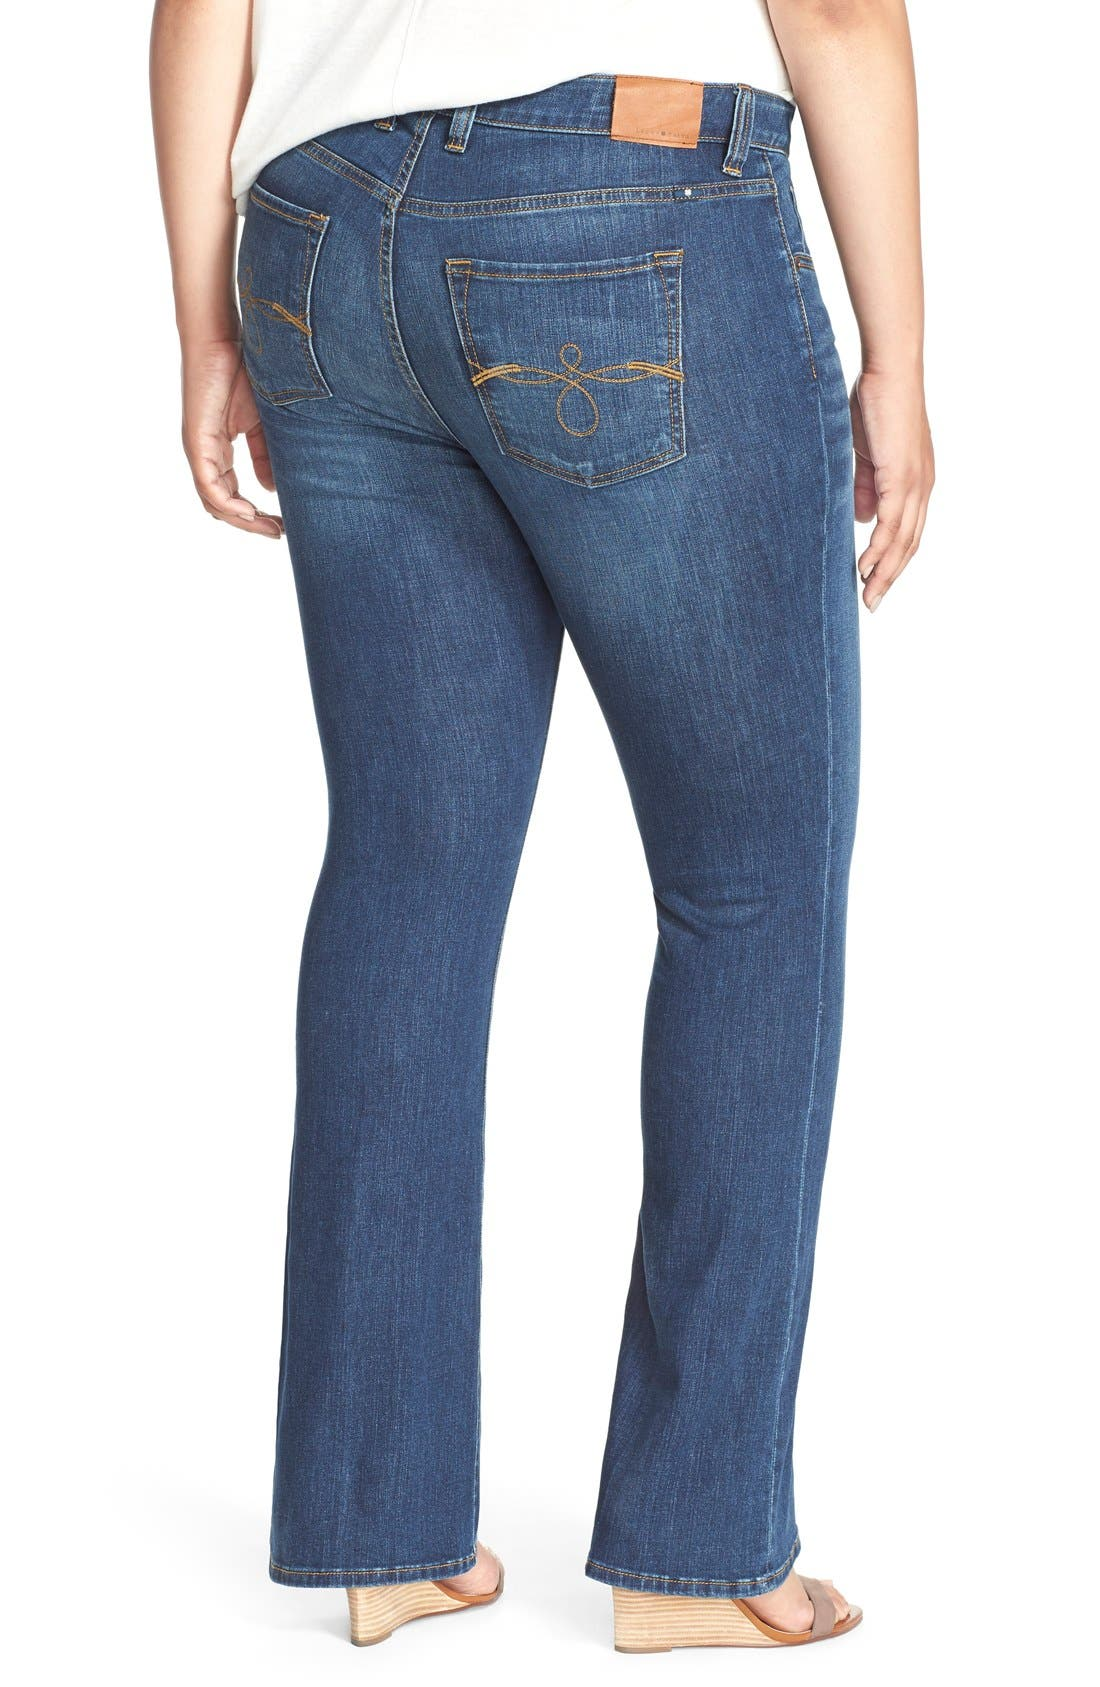 Ginger Bootcut Jeans,                             Alternate thumbnail 3, color,                             420